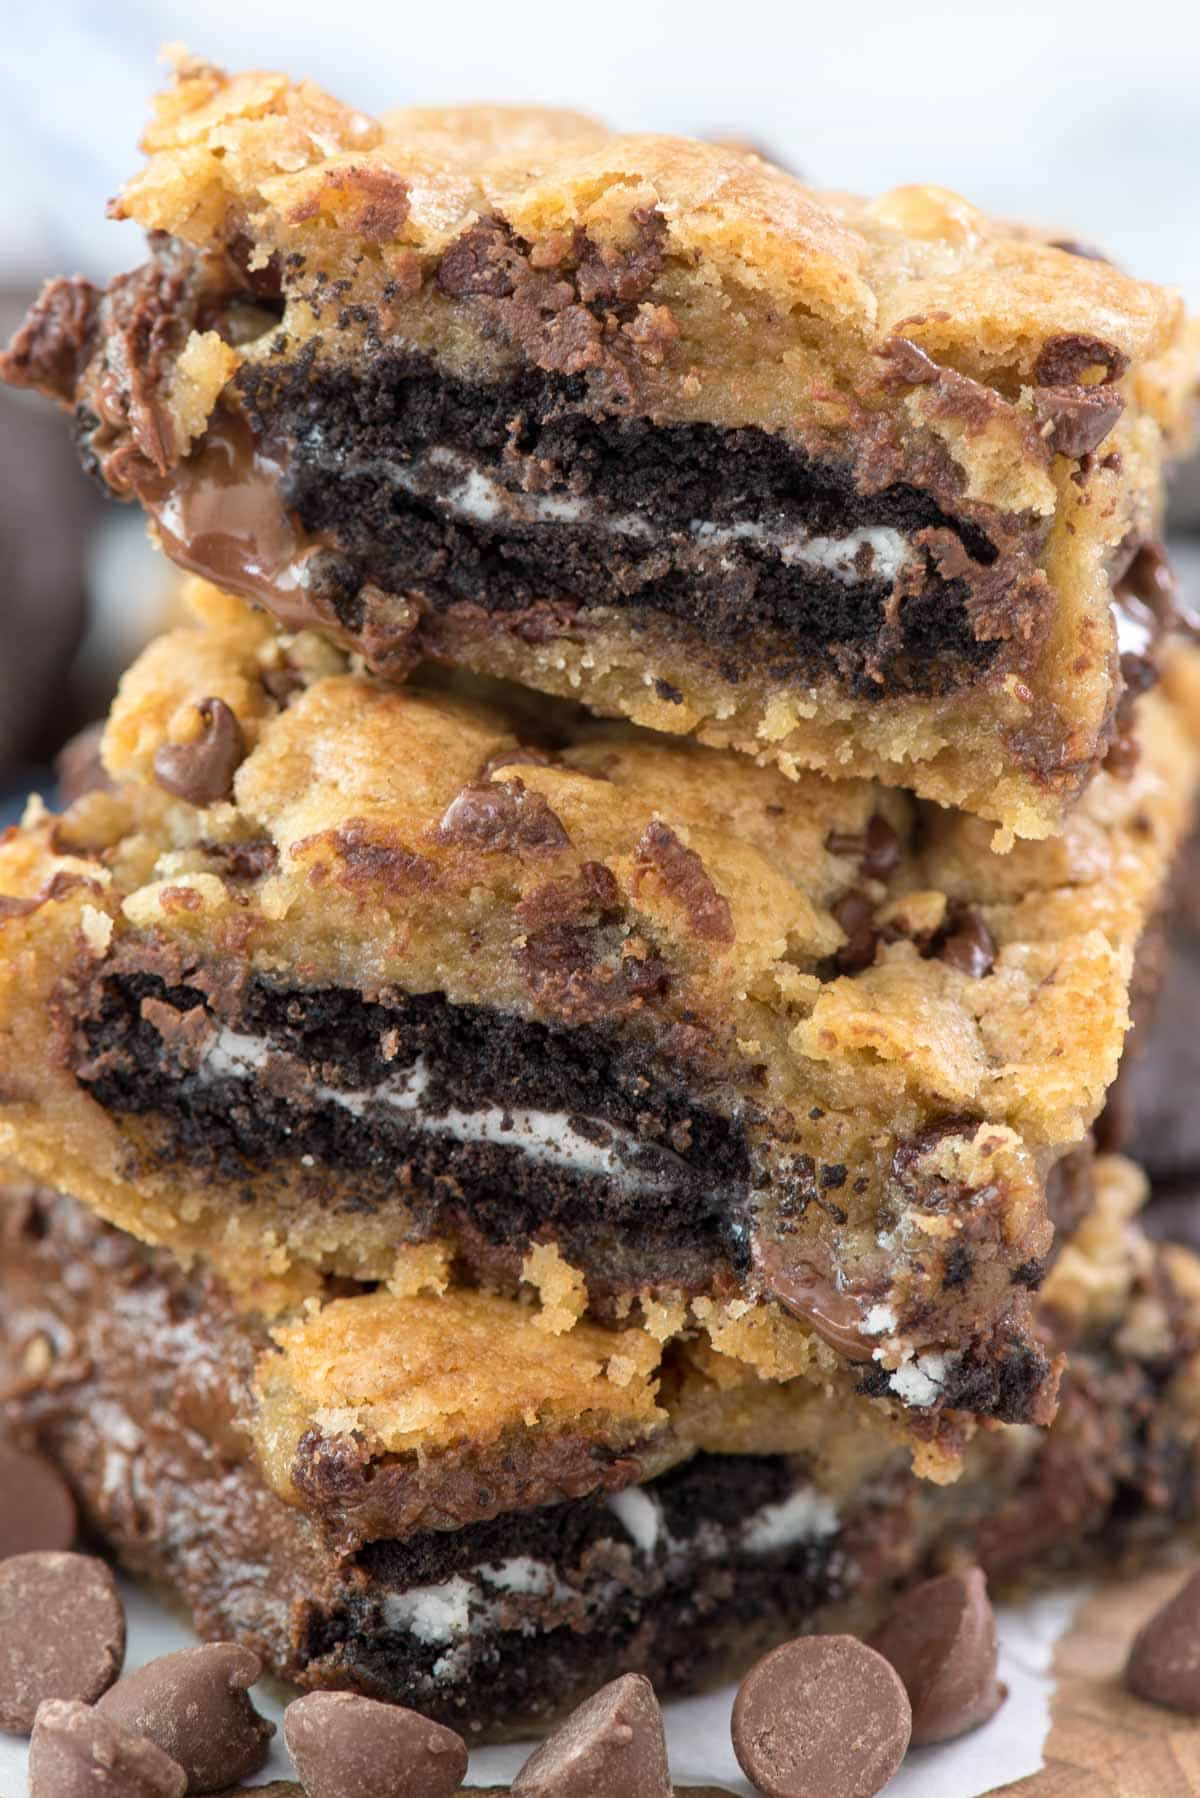 Oreo Stuffed Chocolate Chip Cookie Gooey Bars - Crazy for ...